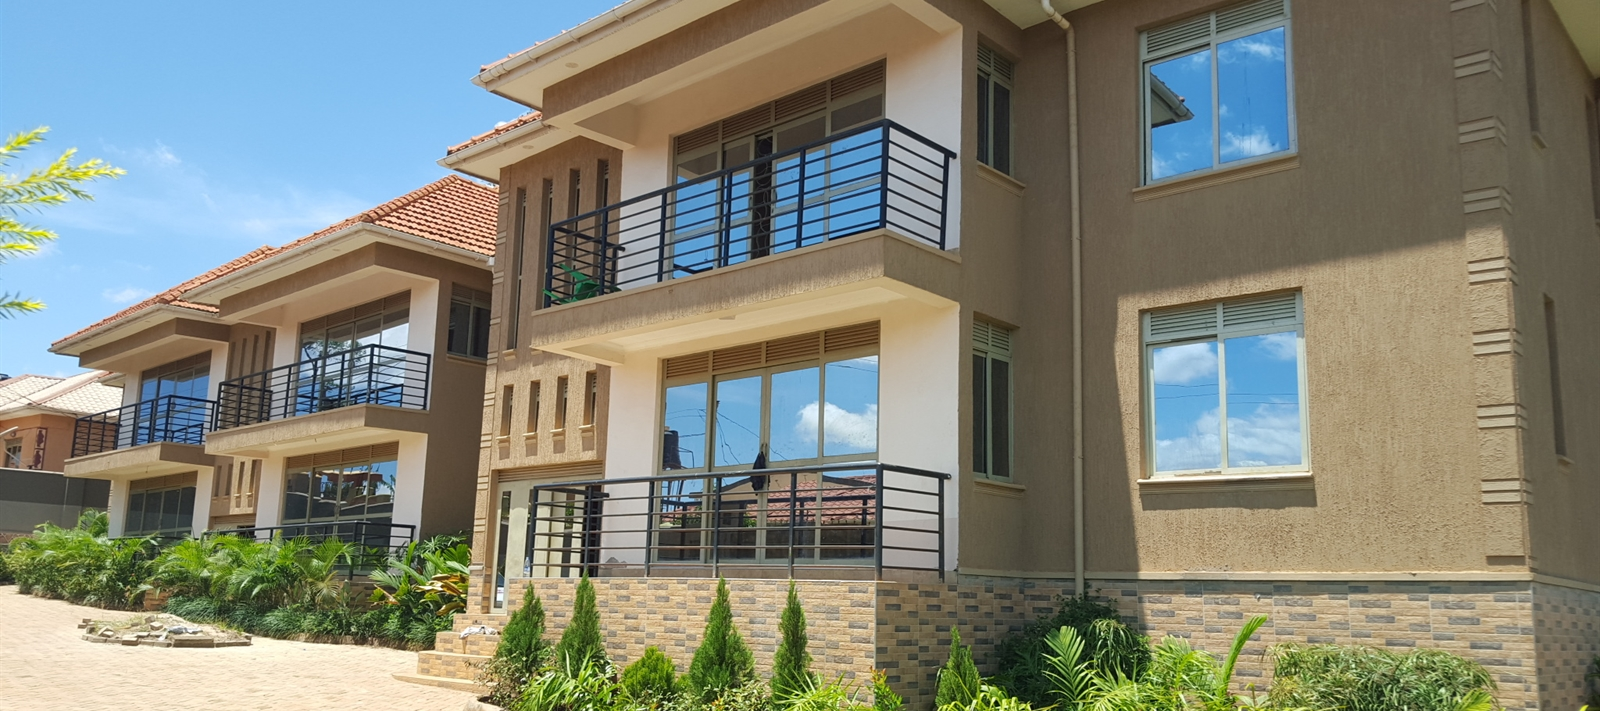 Apartments managed in Kungu